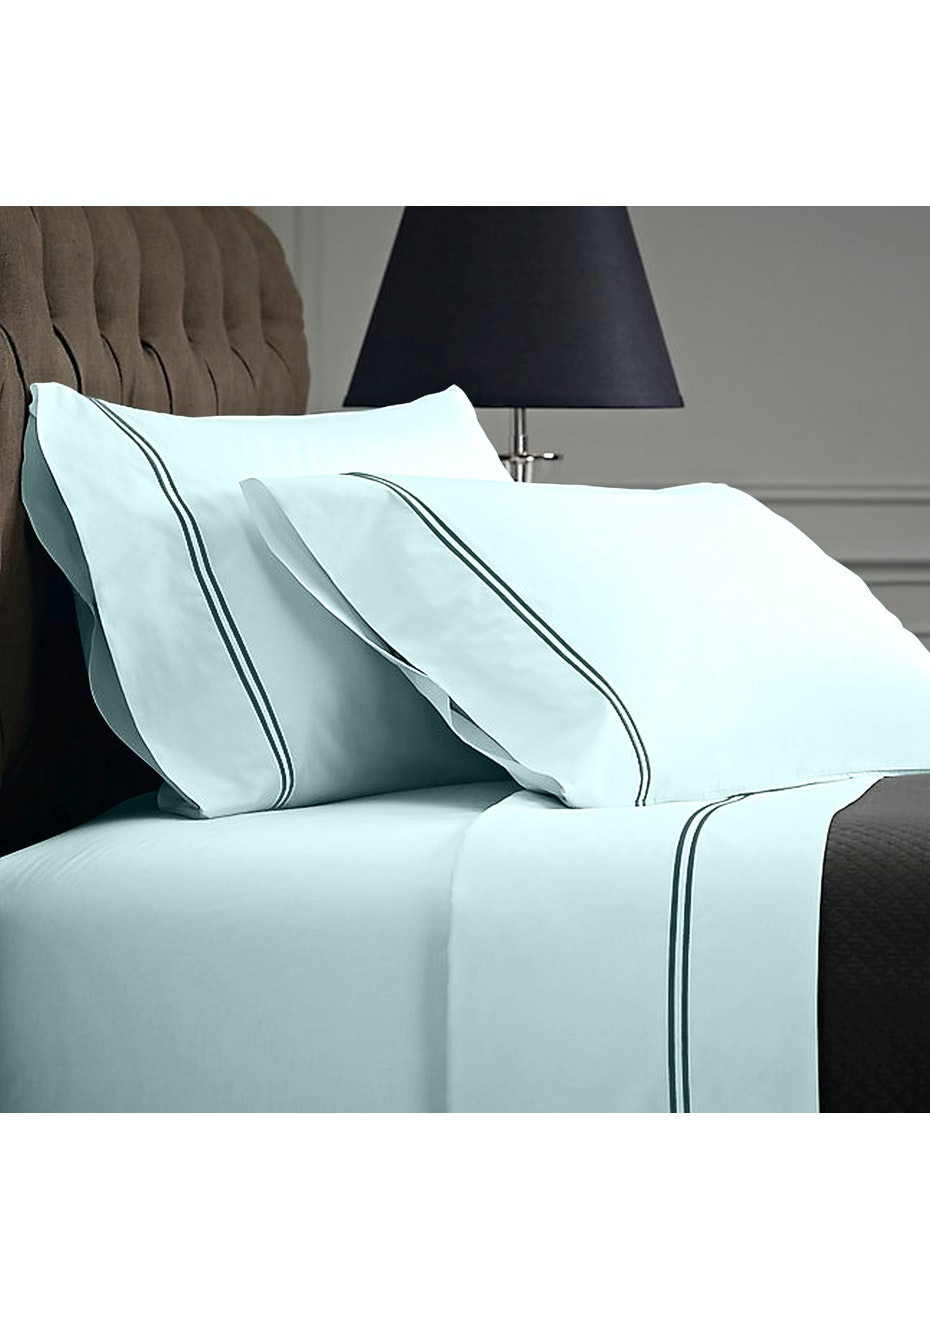 Style & Co 1000 Thread count Egyptian Cotton Hotel Collection Sorrento Sheet sets King Duck Egg